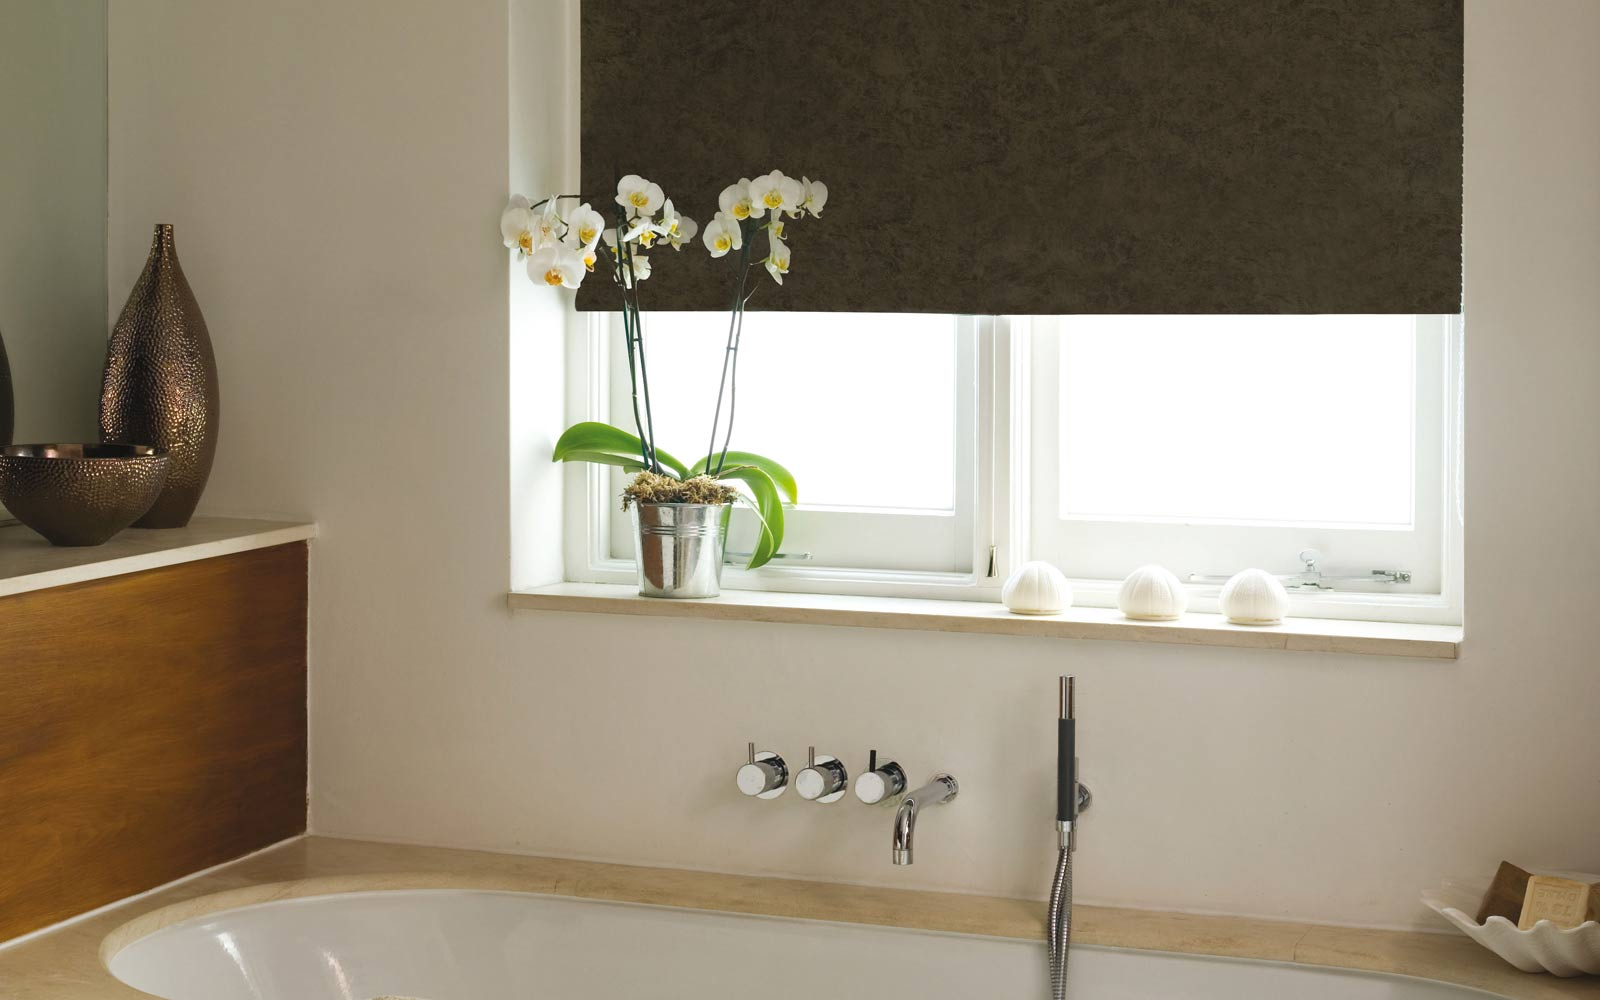 home which blind blinds for a bathroom rollers in a bathroom